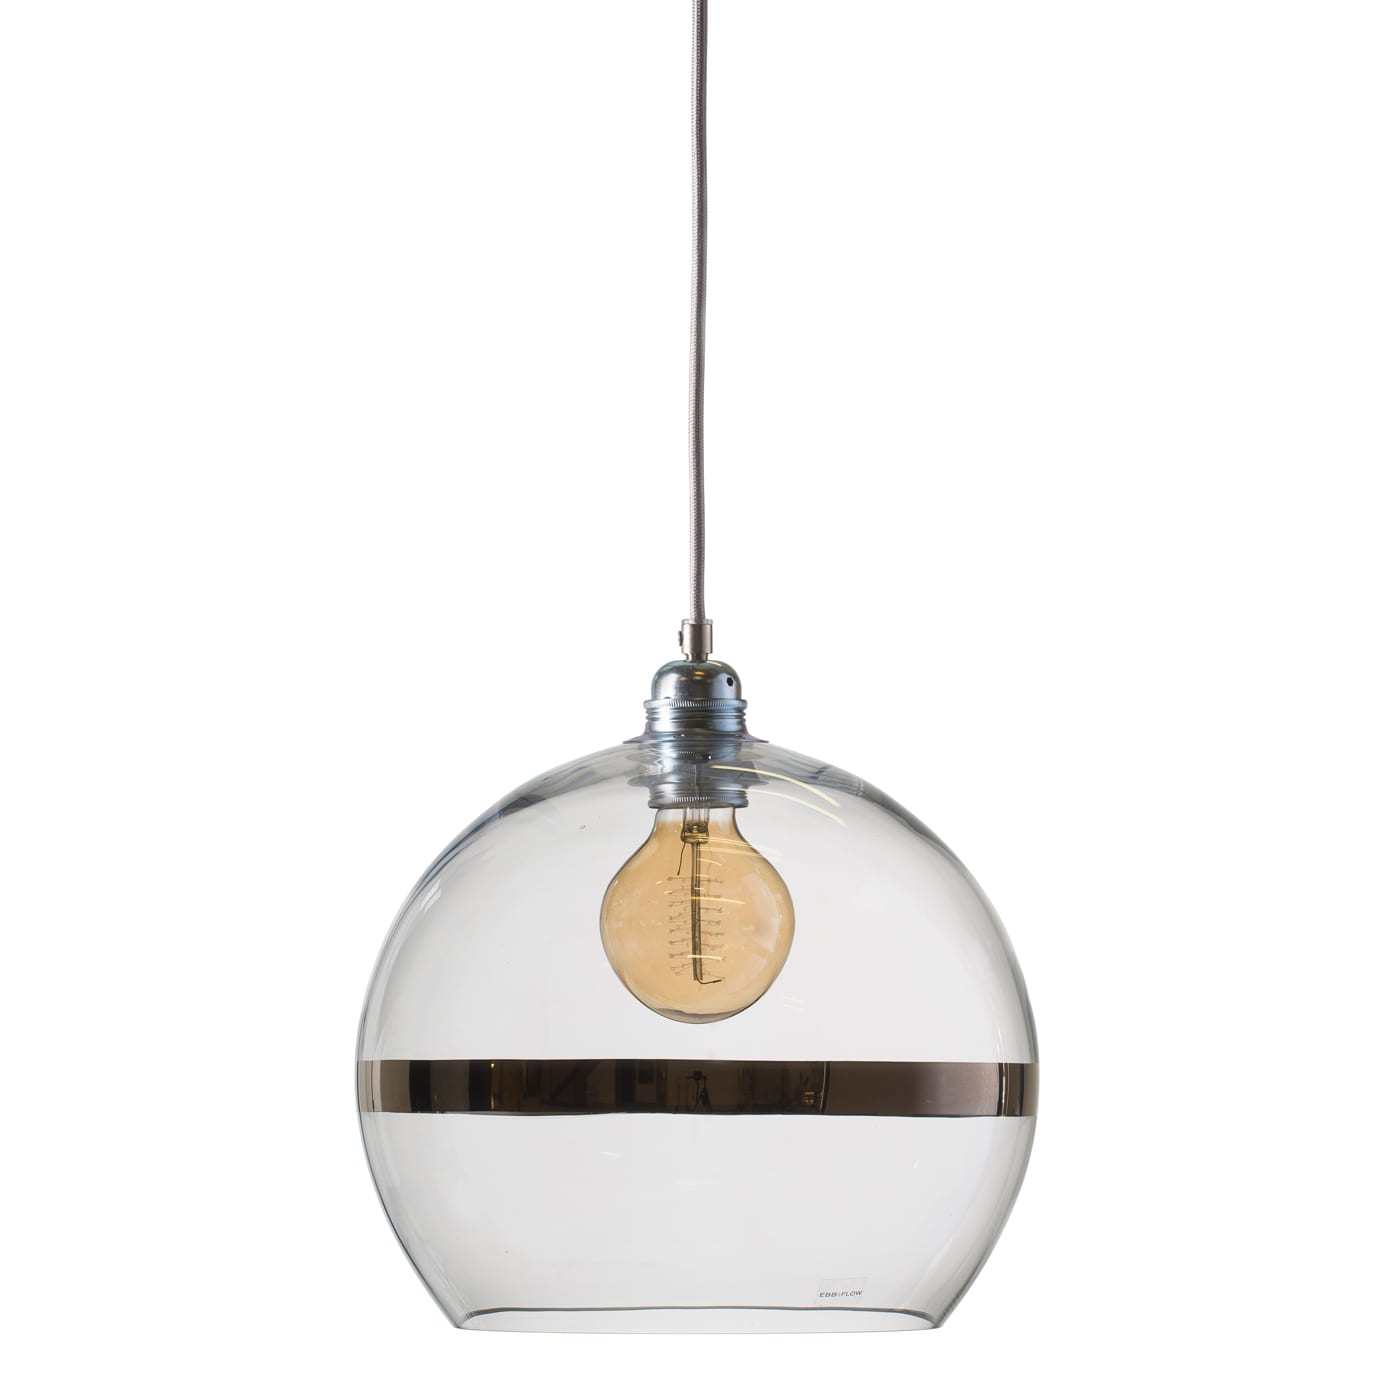 Rowan pendant lamp, platinum stripe on clear 28cm, 1